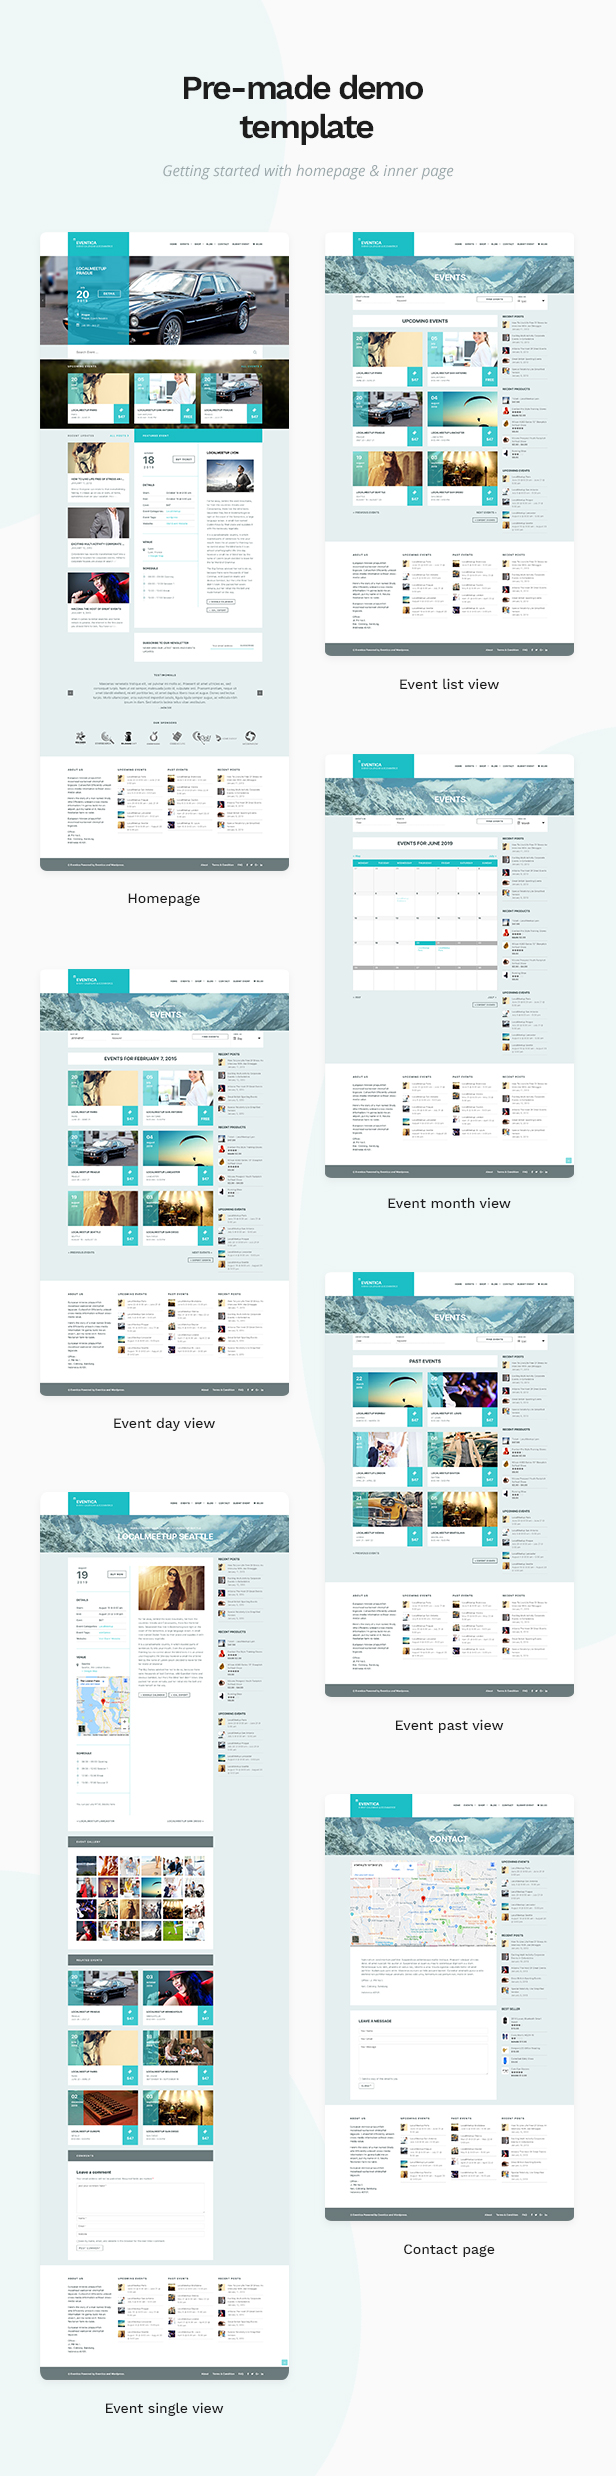 Eventica - Event Calendar & Ecommerce WordPress Theme - 1